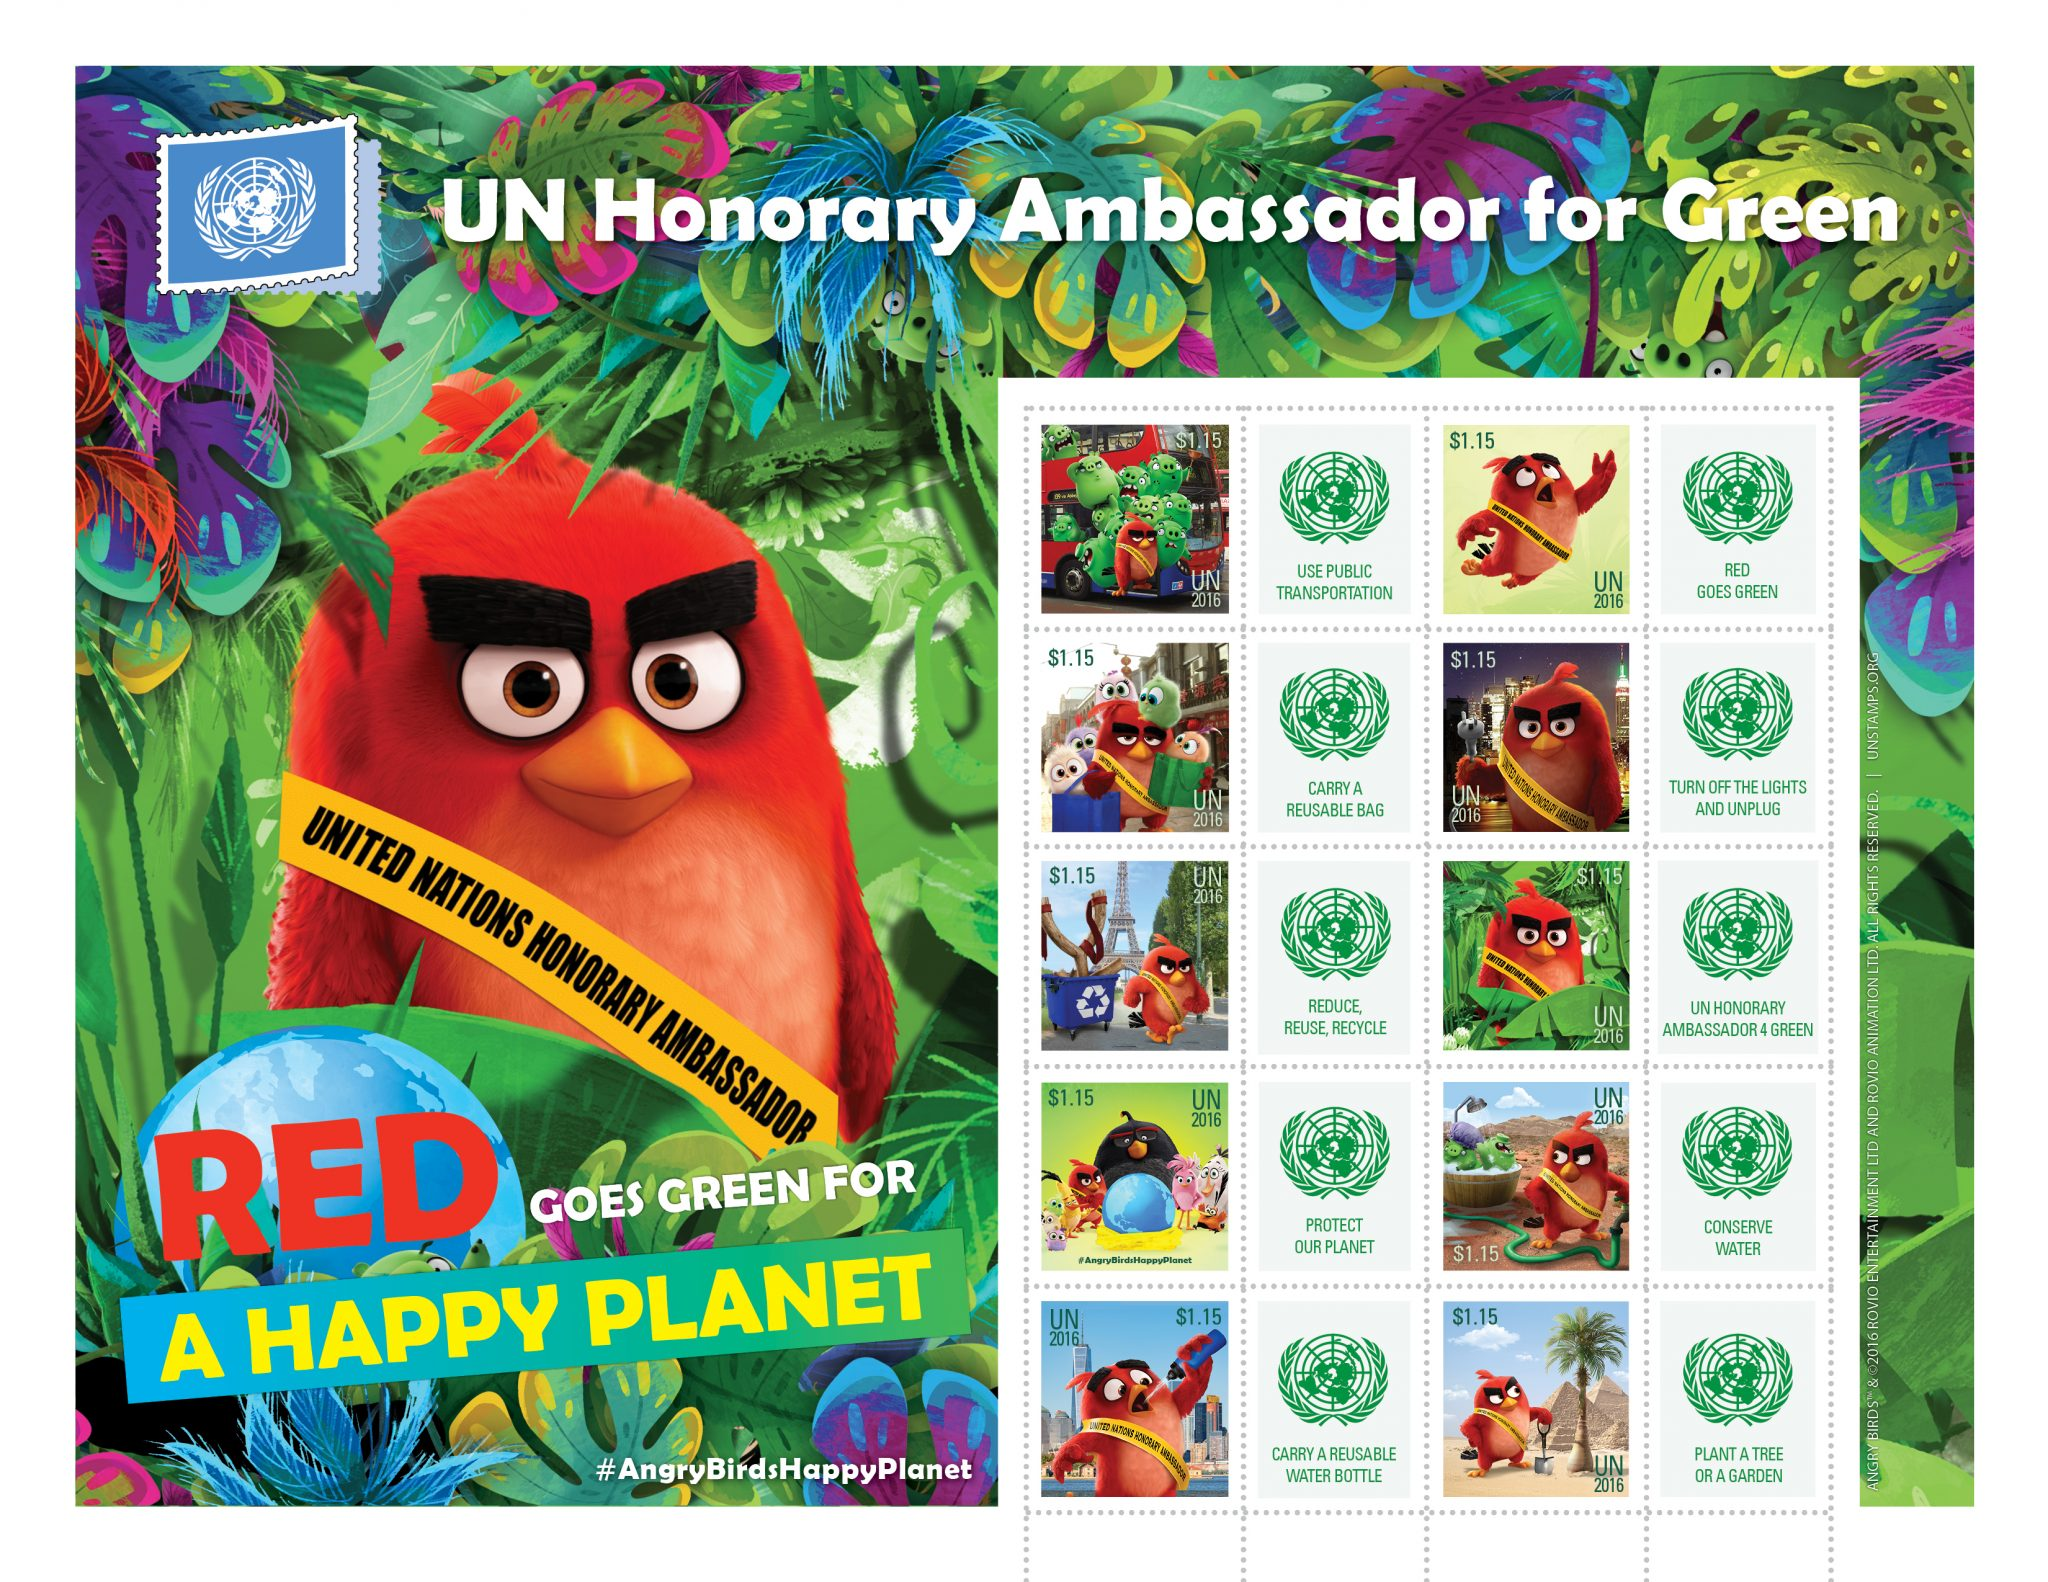 UNPA launches special stamps featuring Angry Bird